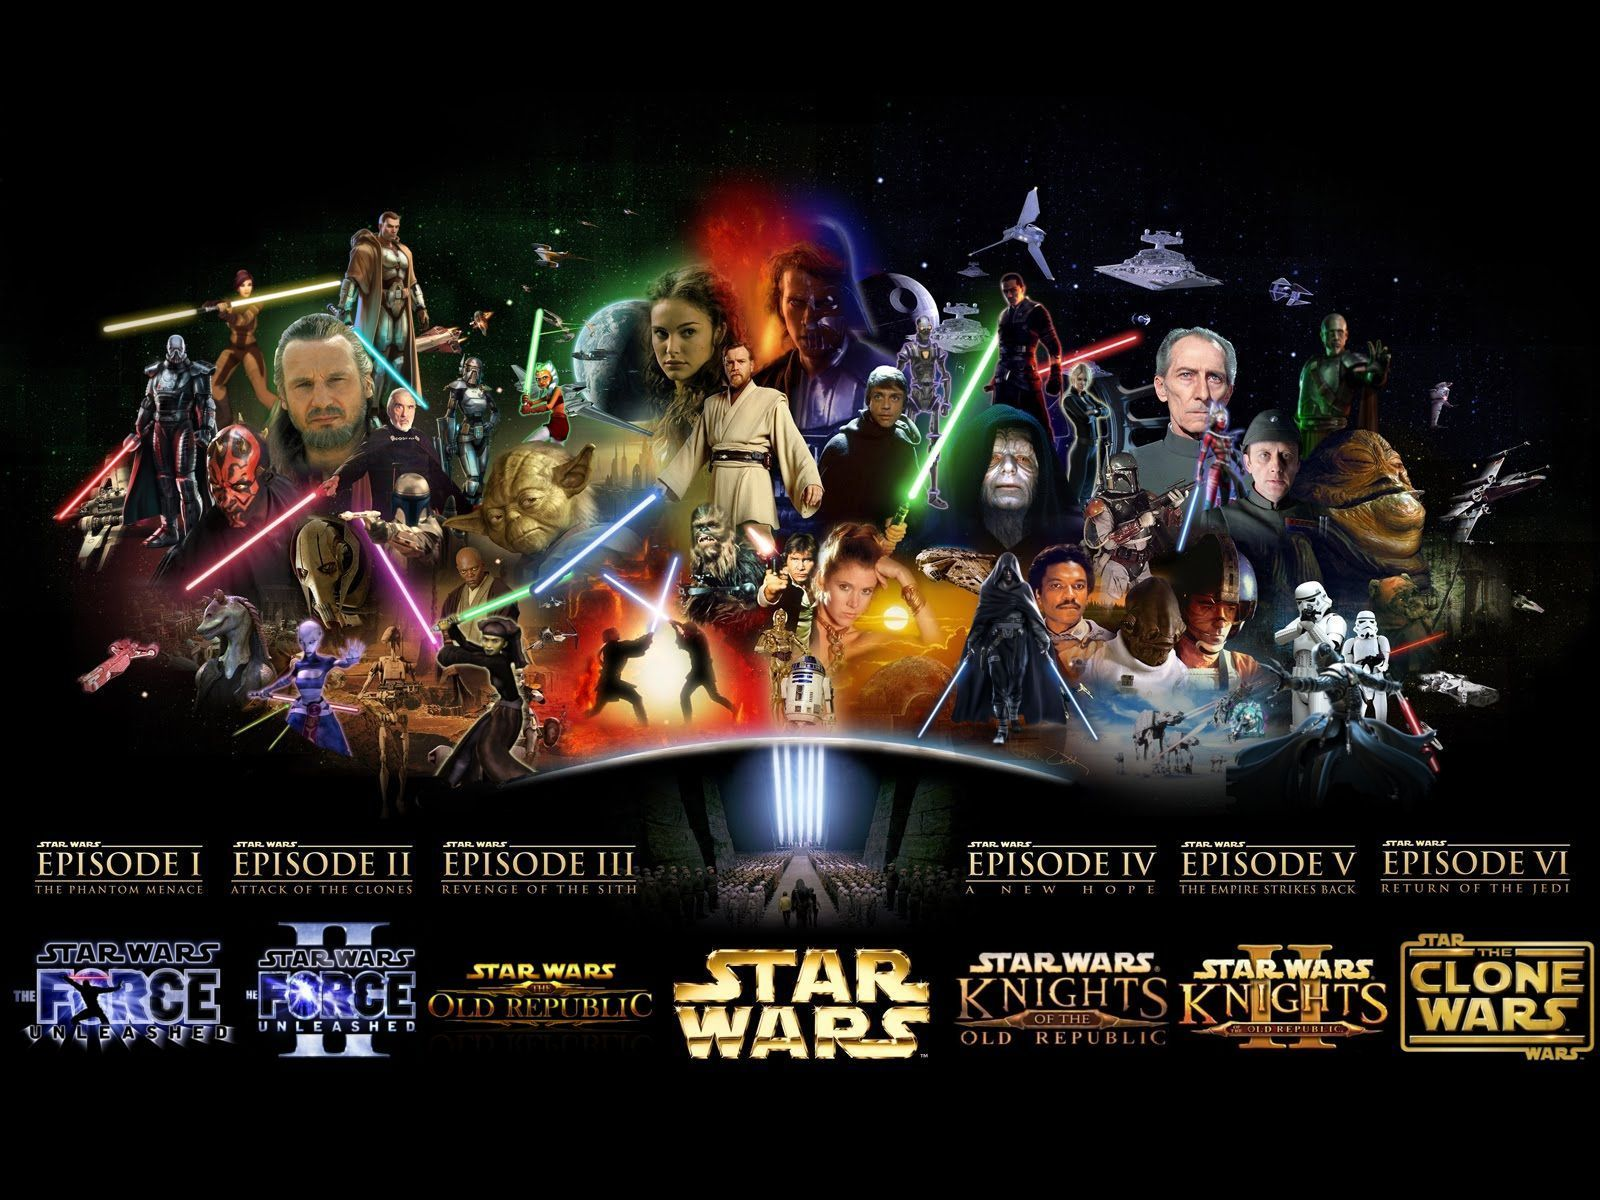 Star Wars Films Wallpapers Wallpaper Cave